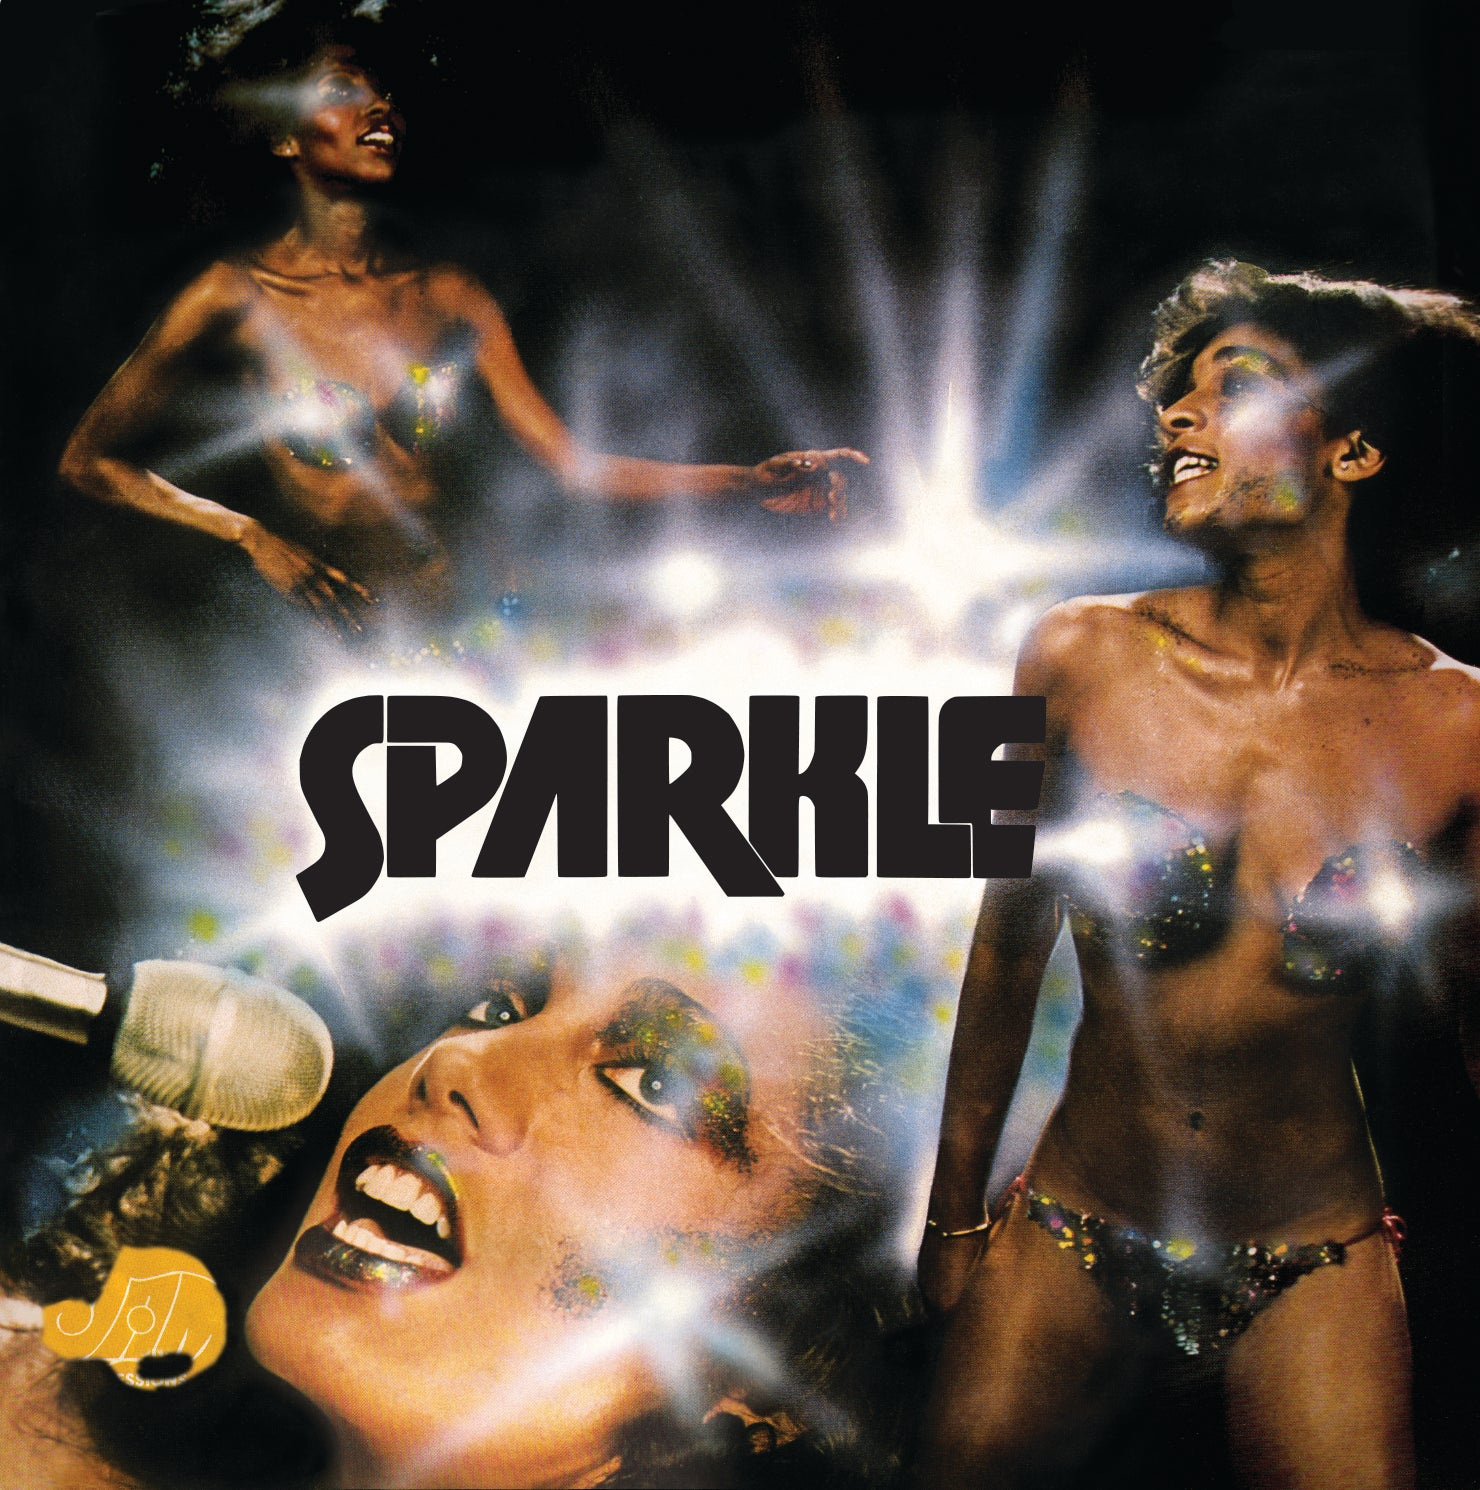 Interview with Sparkle Producer - Harold Sargent